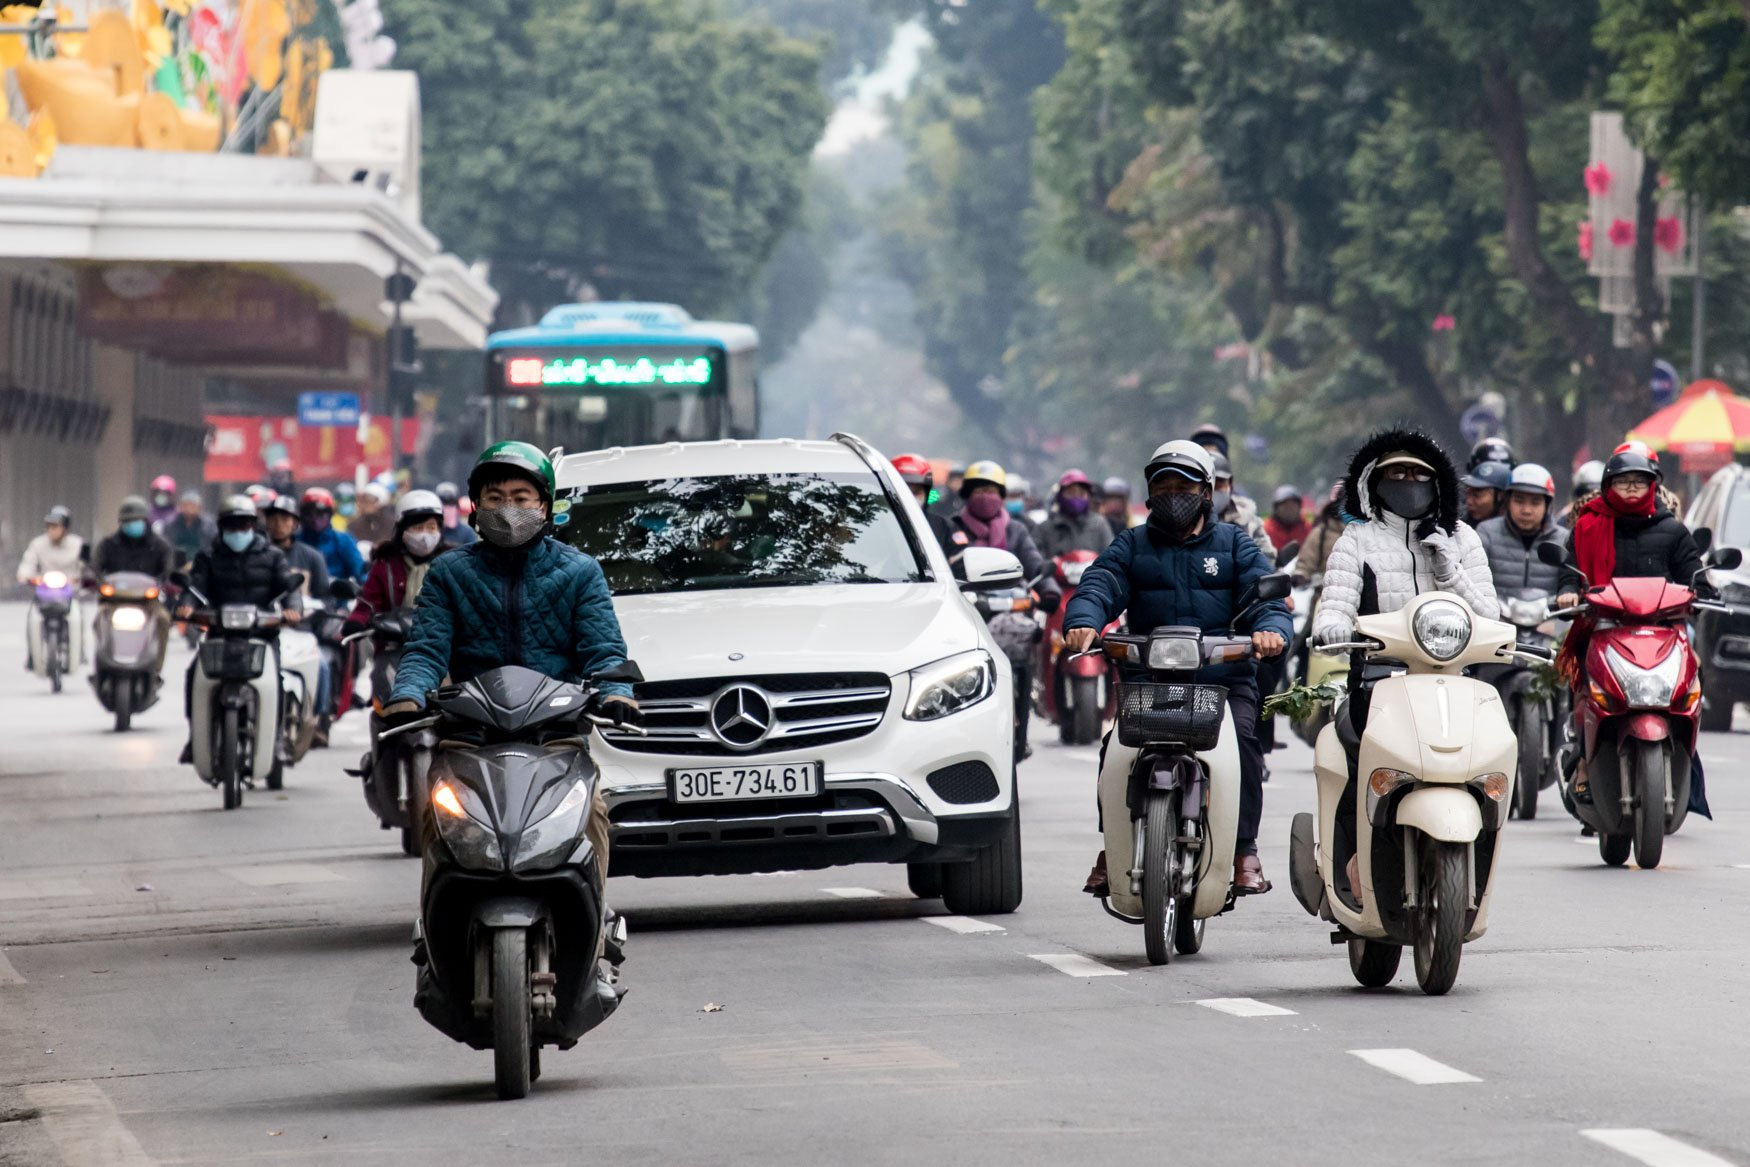 Scooters and a Mercedes in Hanoi